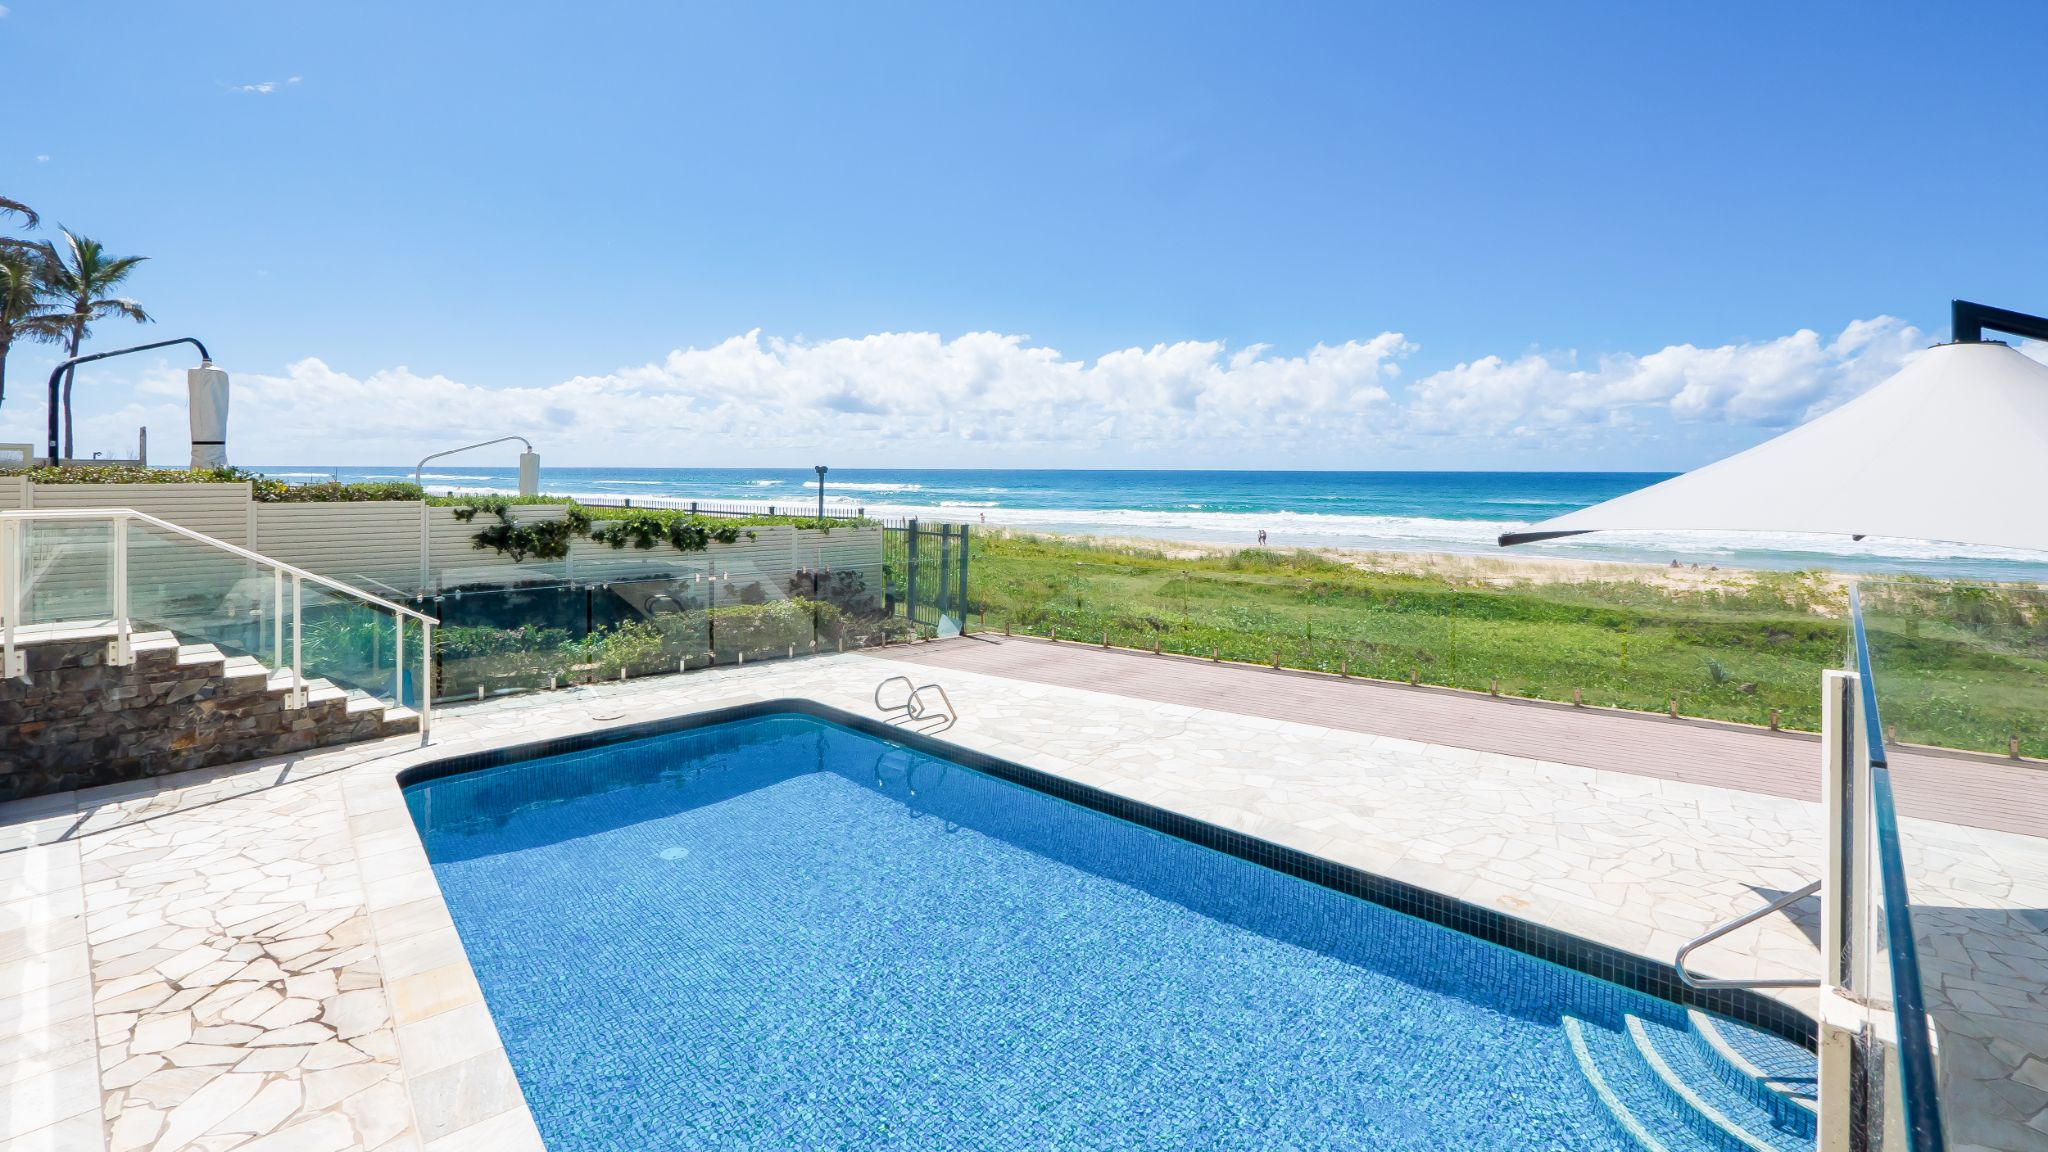 Viscount on the Beach outdoor swimming pool